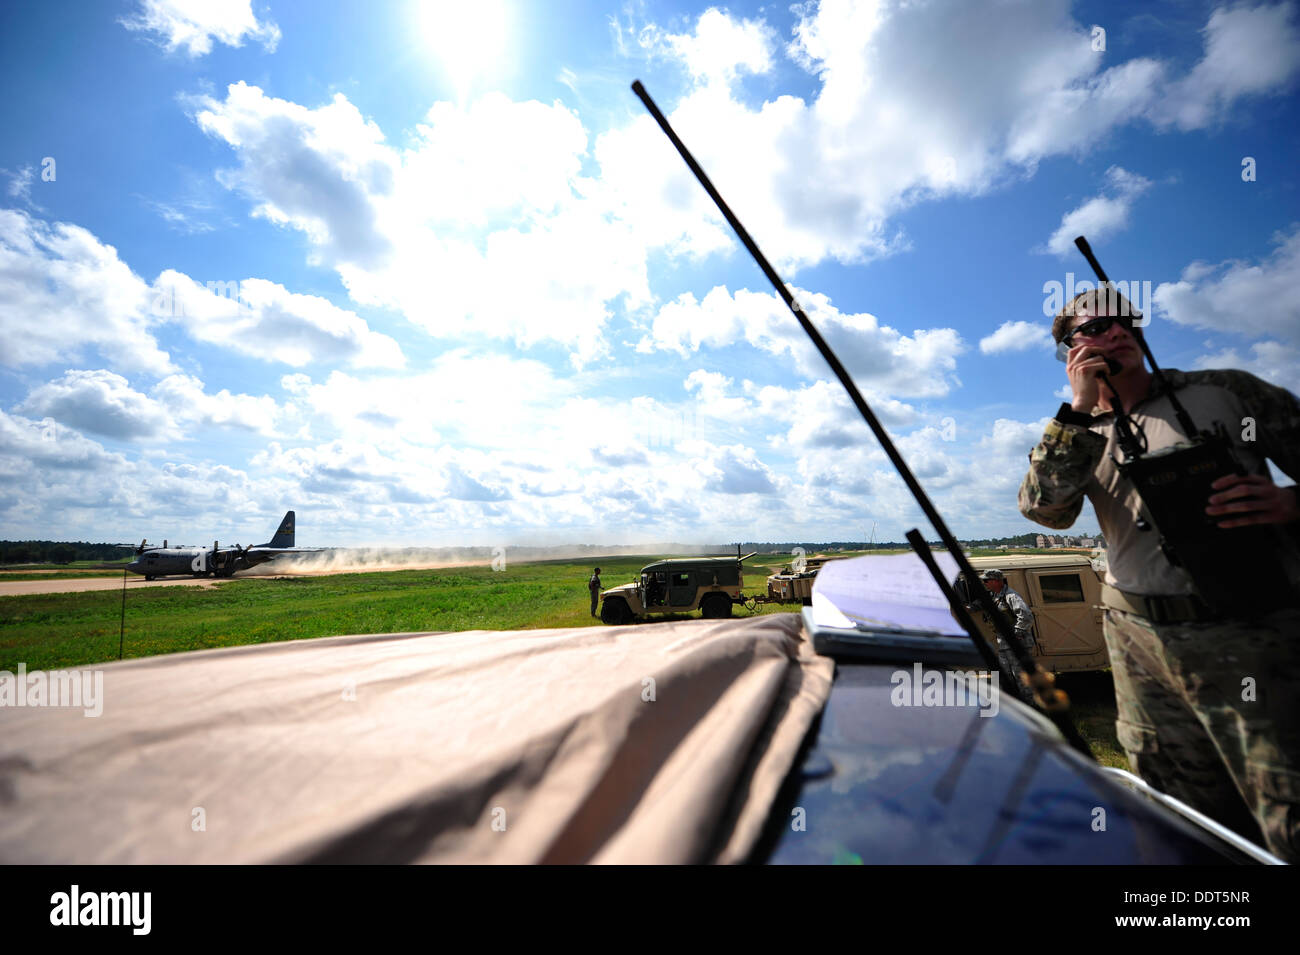 U.S. Air Force combat controller from the 21st Special Tactics Squadron, Fort Bragg, N.C. conducts air traffic control operation - Stock Image